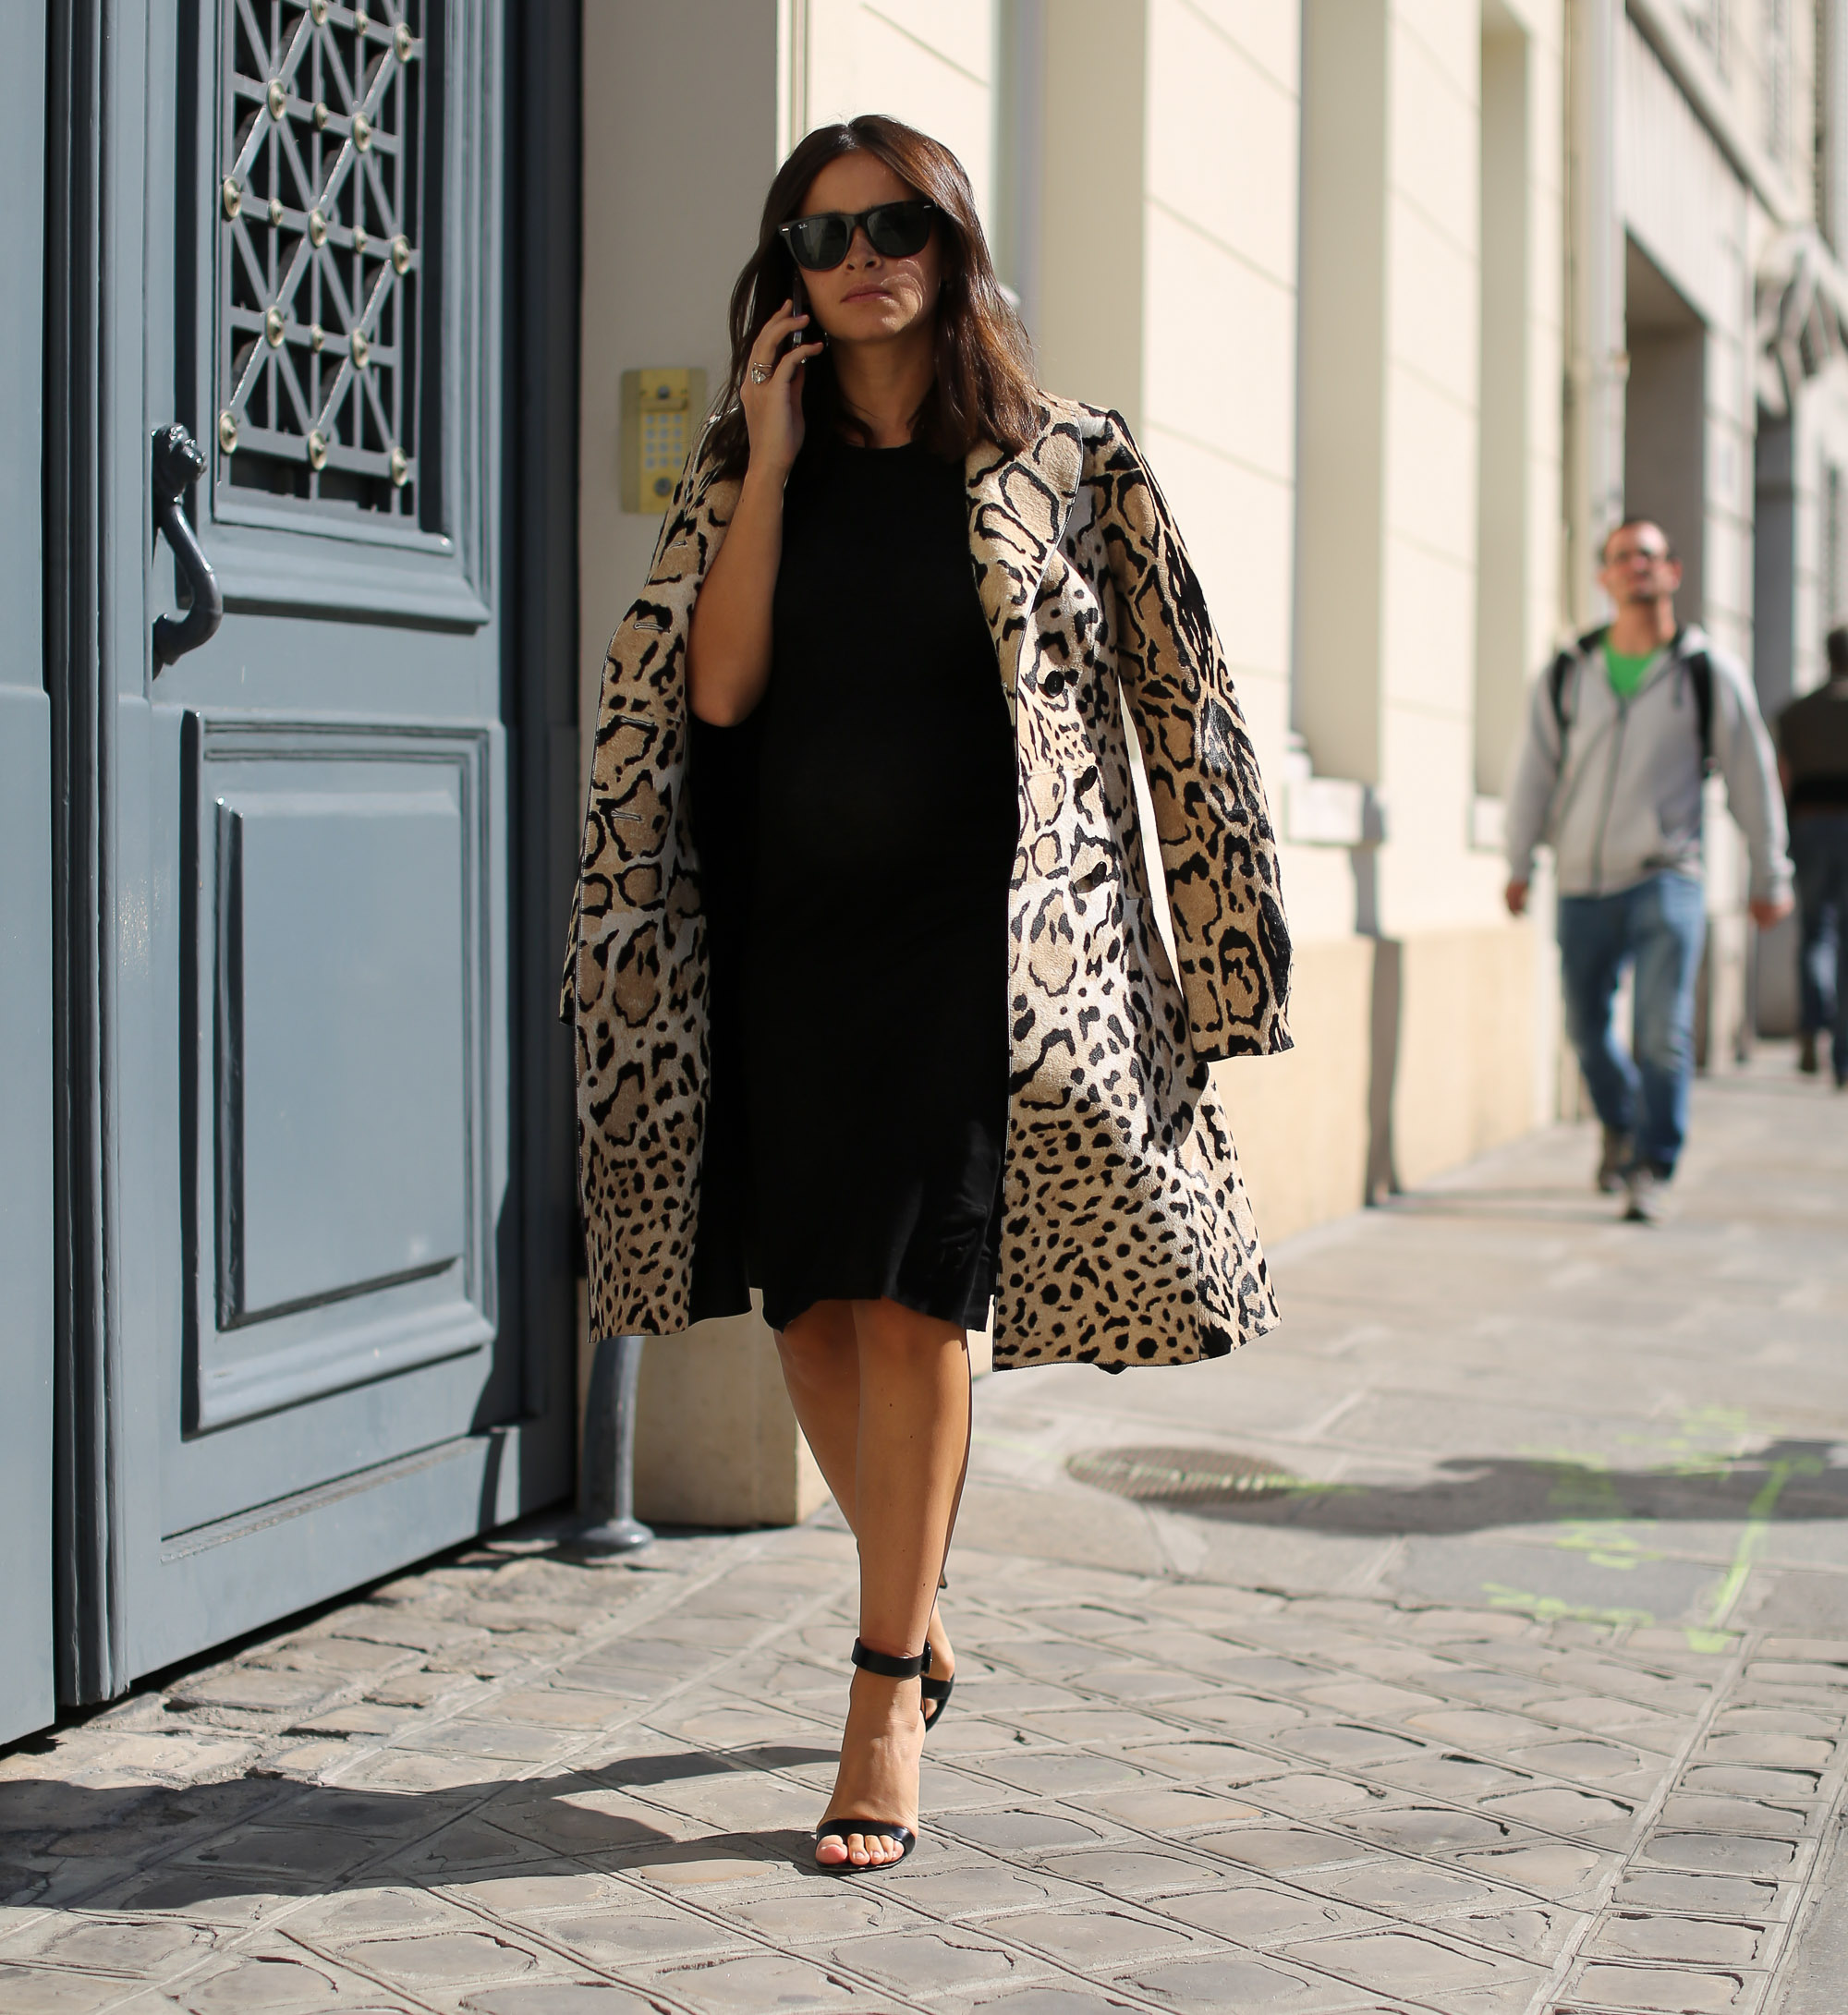 Paris-fashion-week-streetstyle-iovana-battaglia-ana-dello-russo-1-3